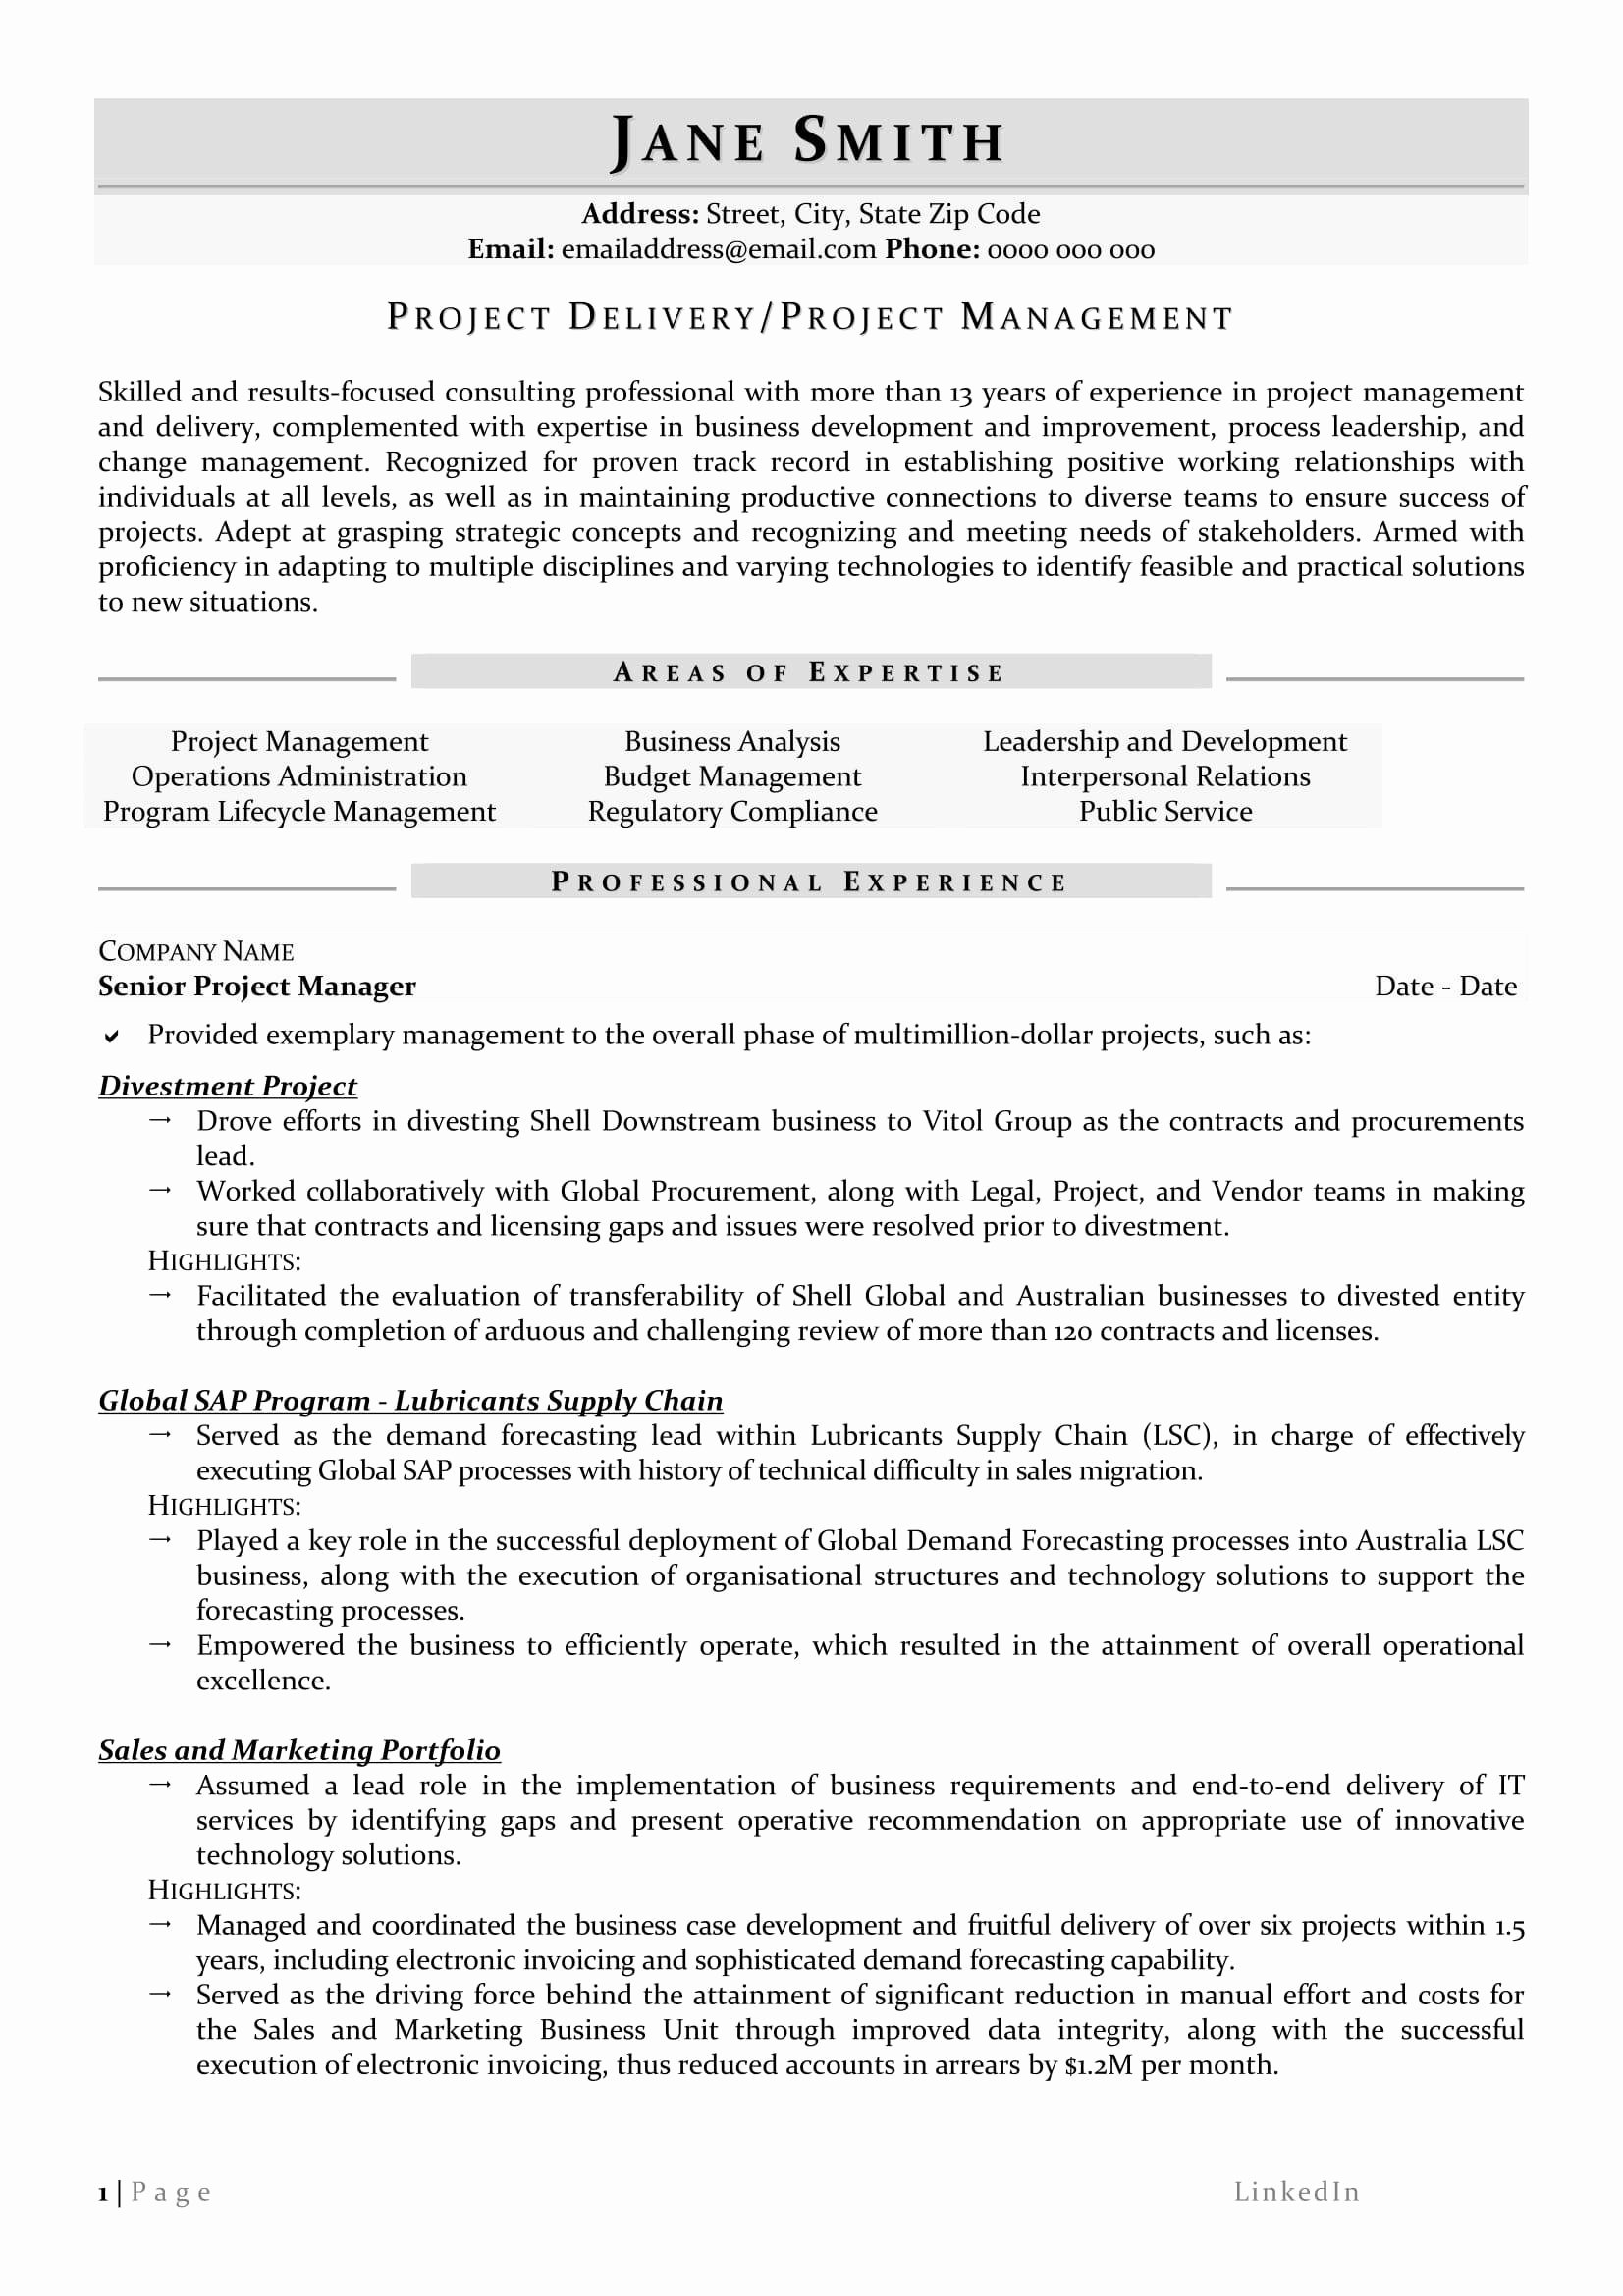 Project Management Resume Samples Awesome Senior Project